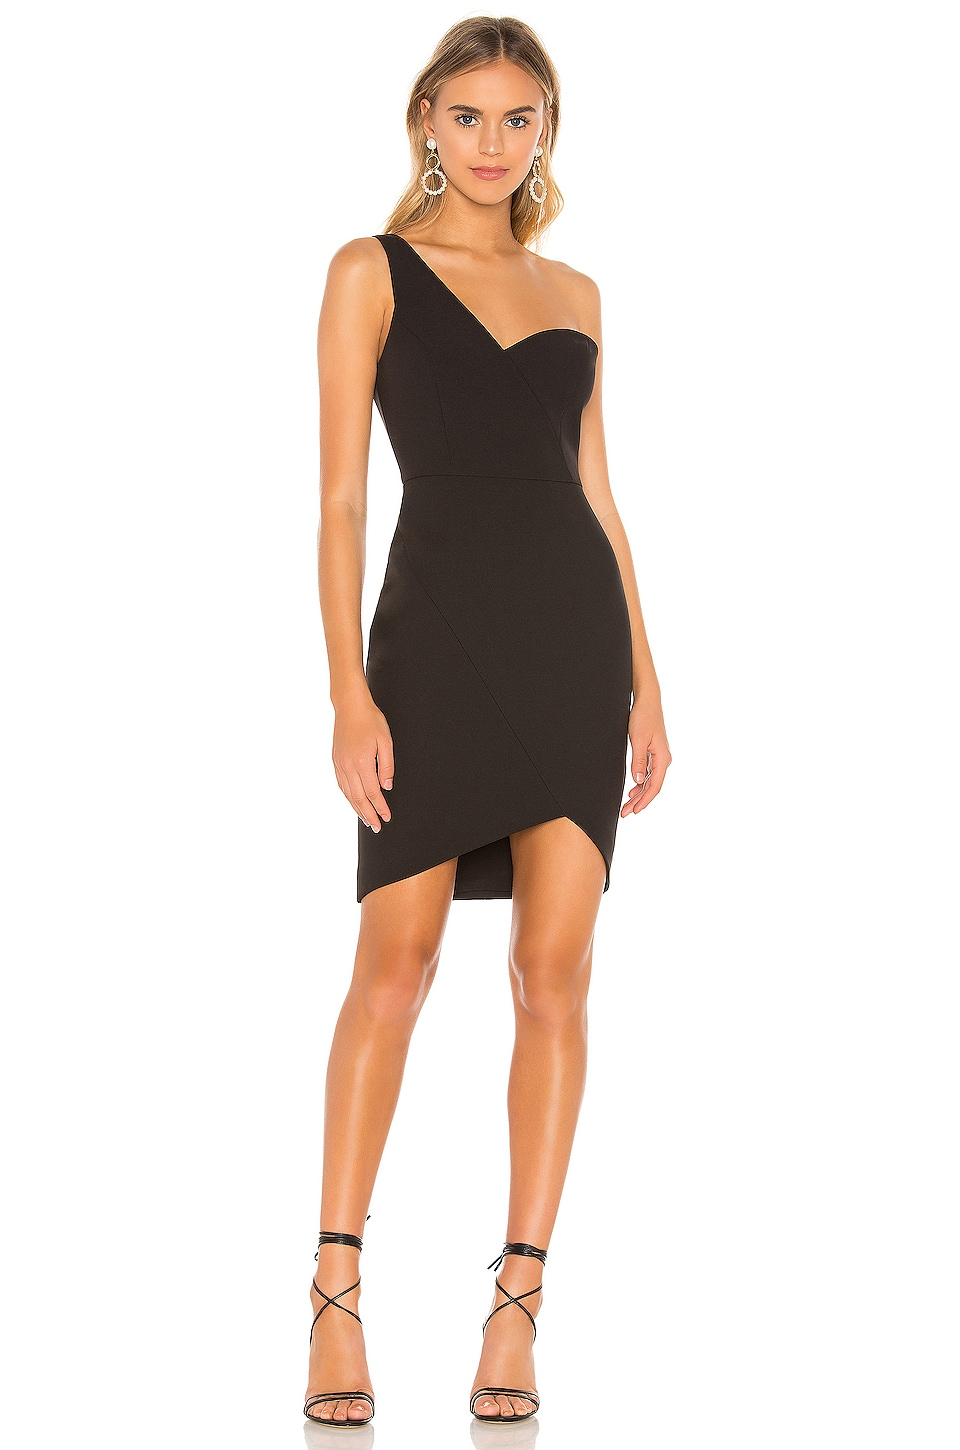 BCBGMAXAZRIA Eve One Shoulder Dress in Black